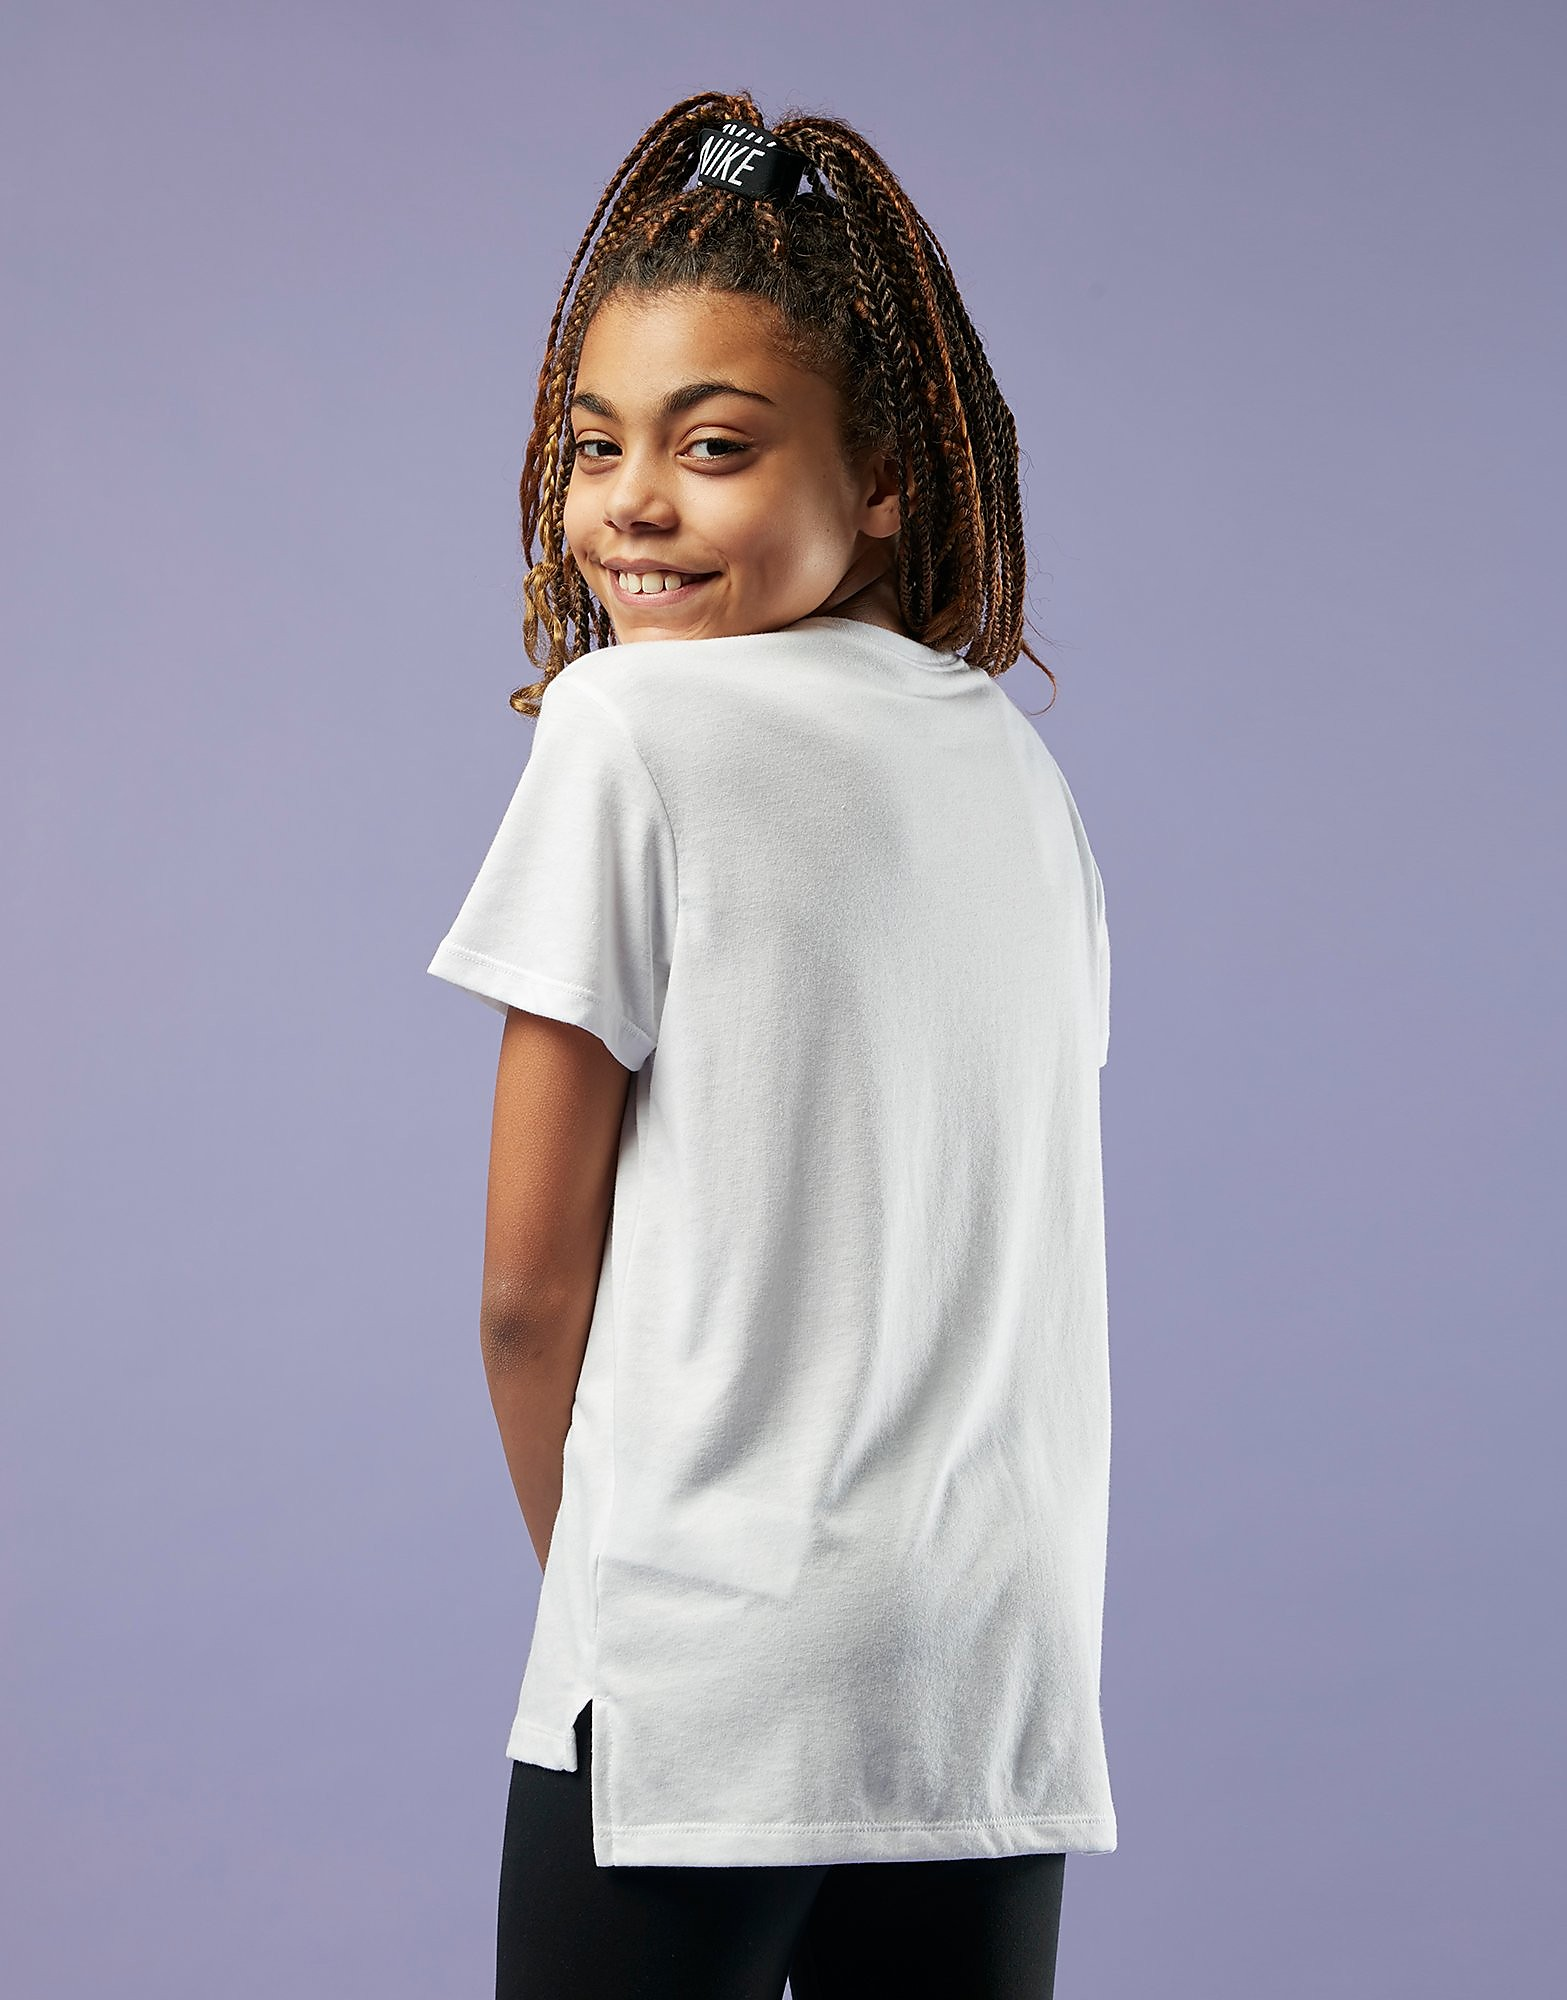 Nike camiseta Girls' Stack Just Do It júnior